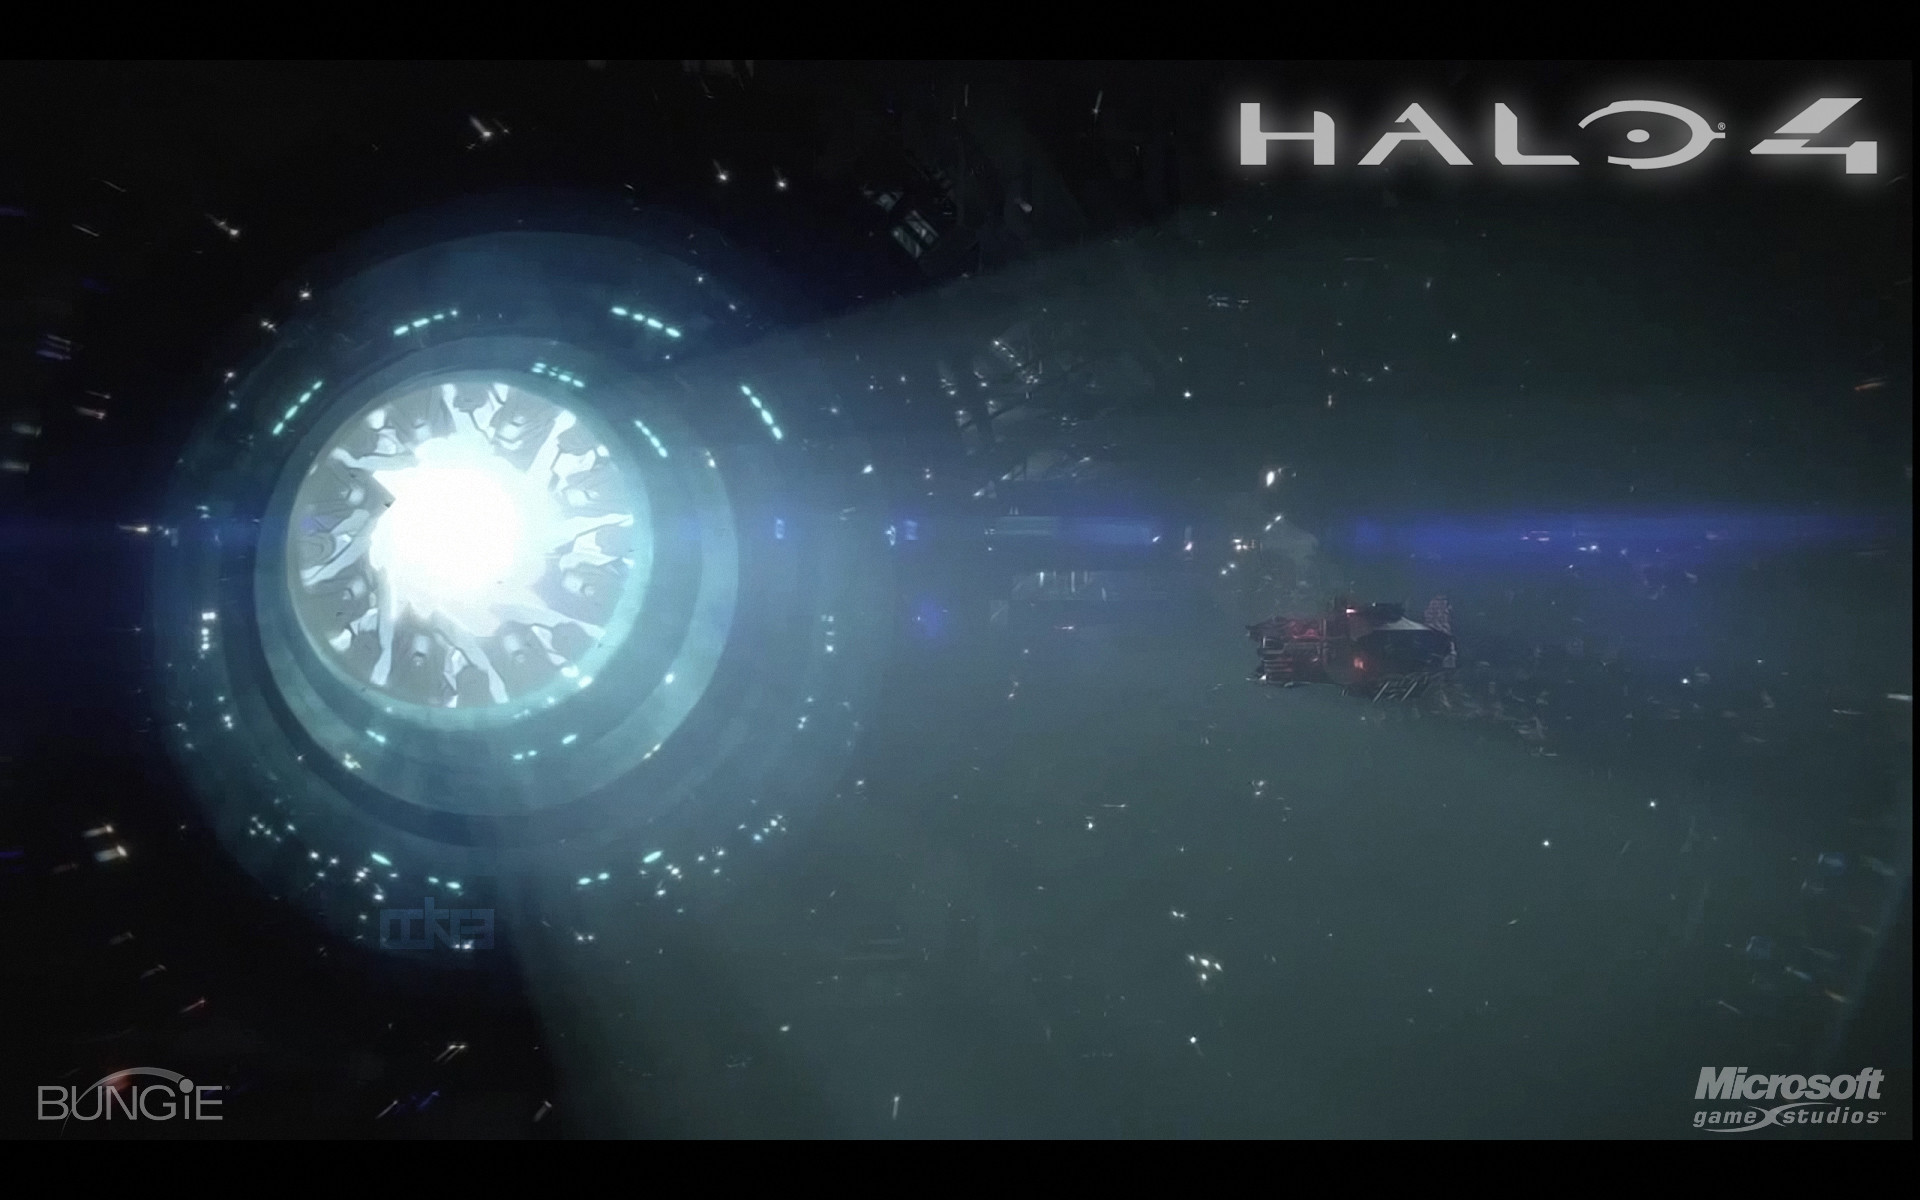 halo 4 wallpaper hd background download high definition amazing mac desktop  images samsung phone wallpapers 1080p